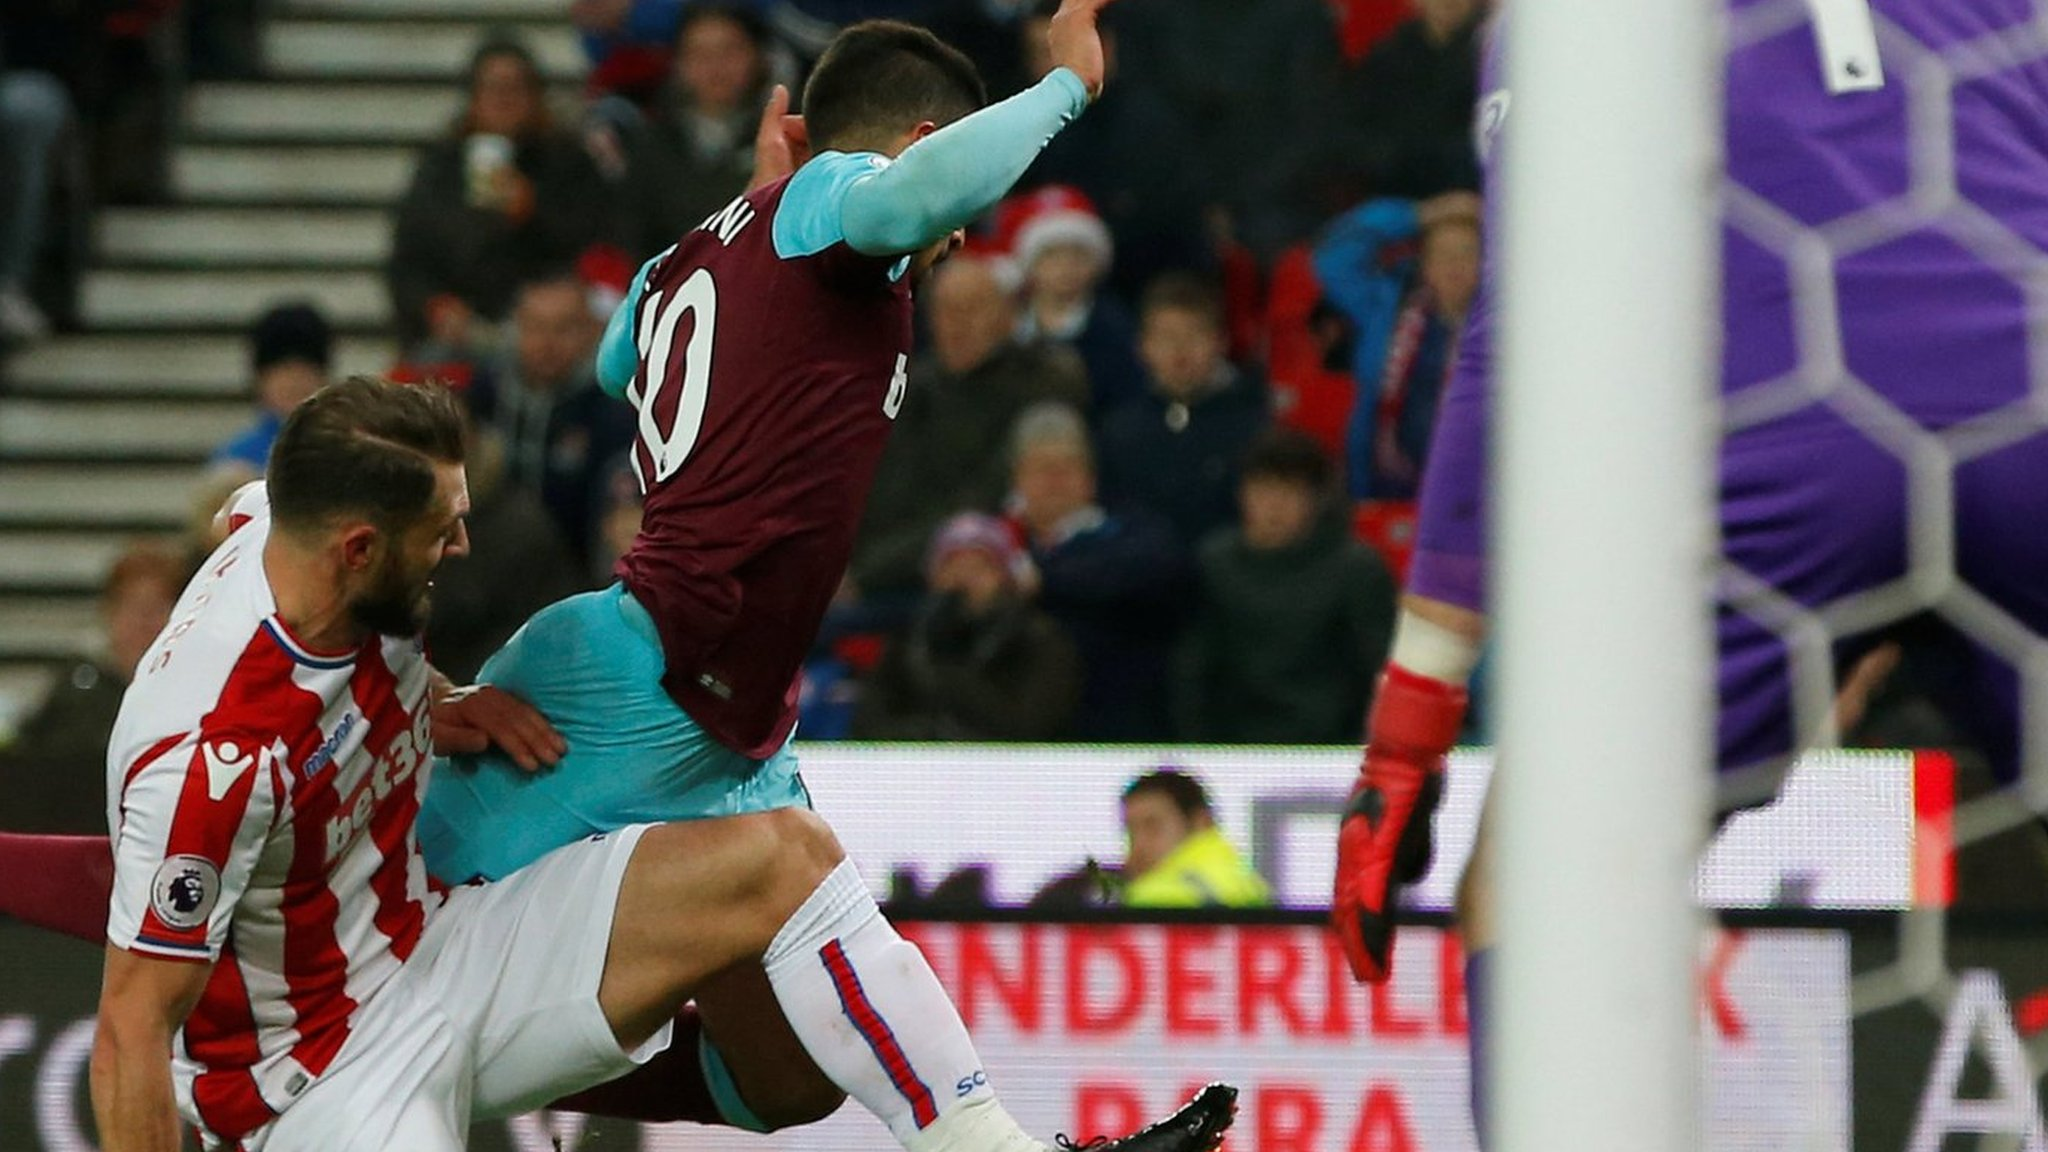 West Ham's Lanzini charged by FA for diving